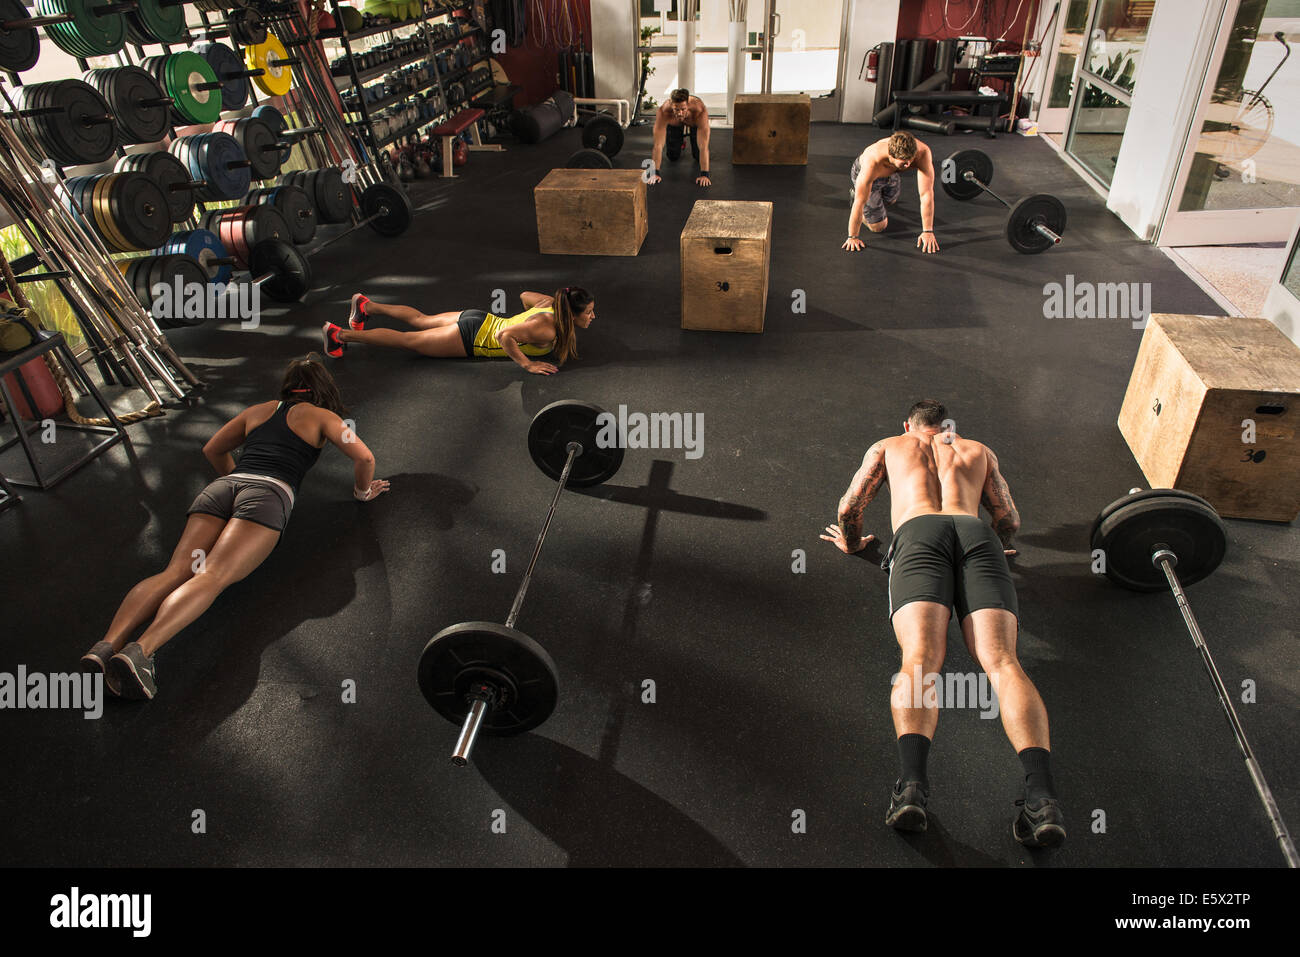 Bodybuilder doing push ups in gym - Stock Image